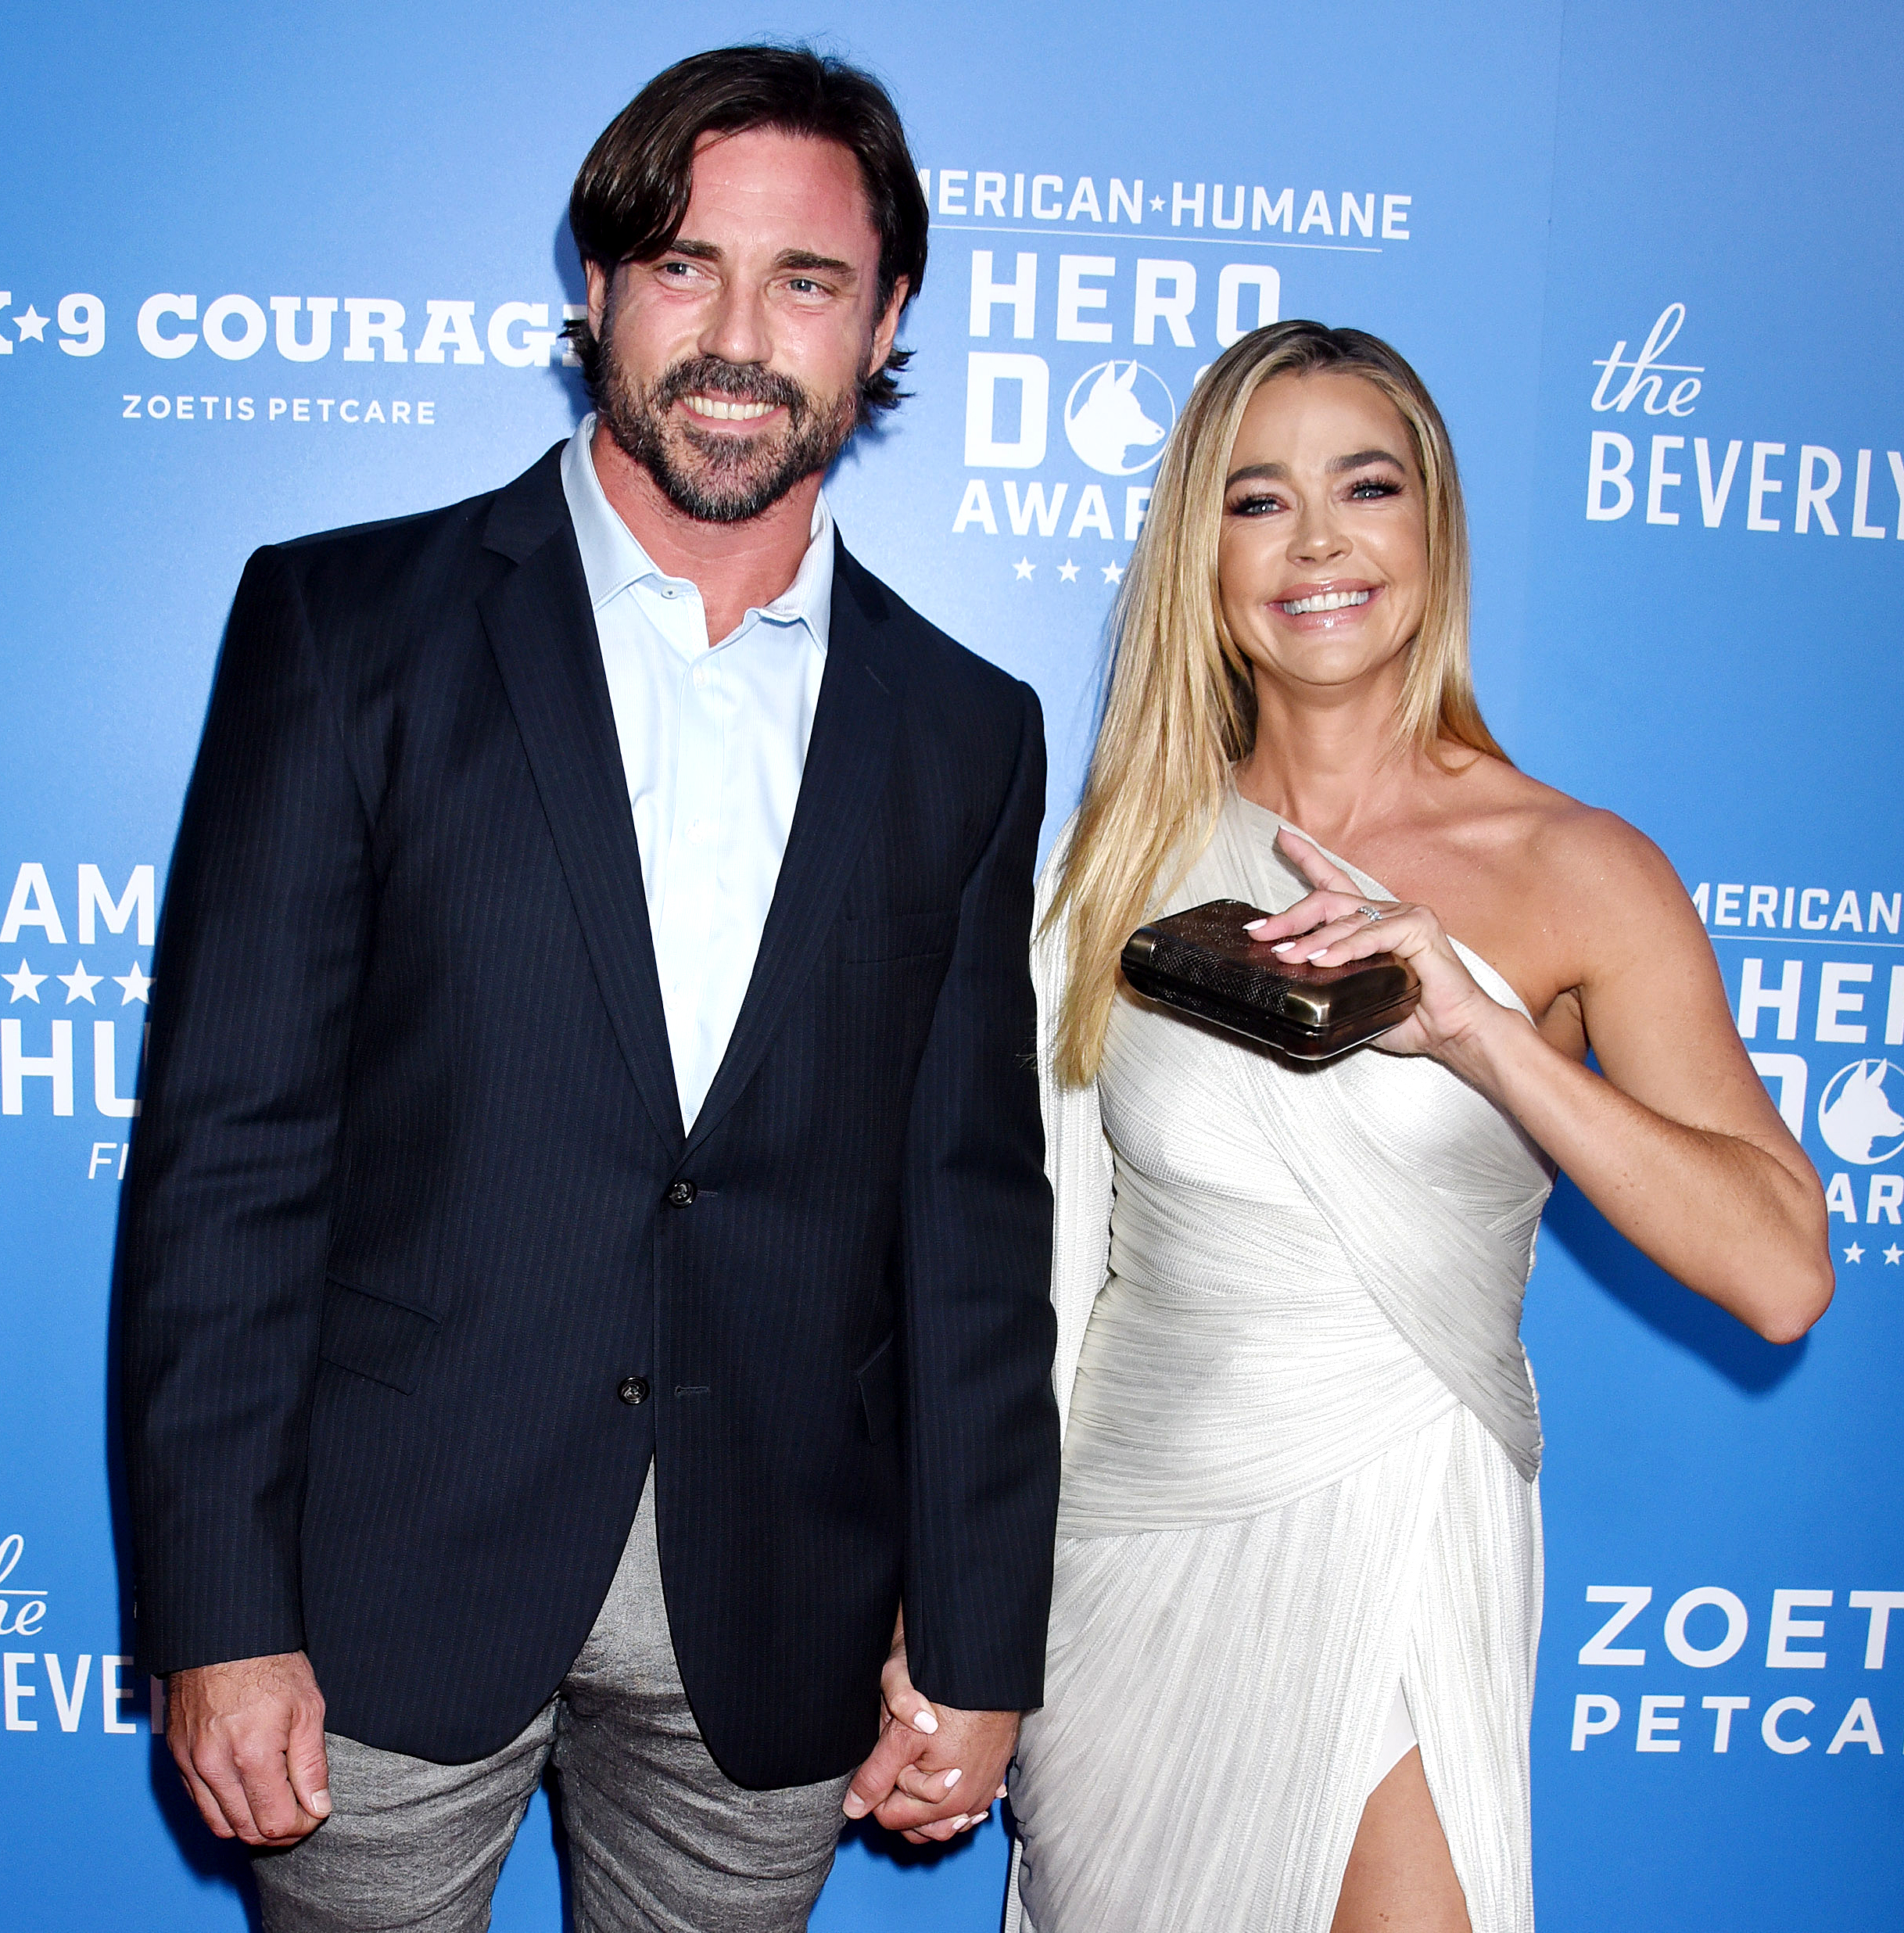 """Denise Richards Quotes About Husband Aaron Phypers - Denise shocked her costars in the May 7 episode of RHOBH when she admitted she had hunted down a masseuse who would perform a happy ending on her husband. """"Aaron had never had a happy ending, and we were on the hunt,"""" she said, adding, """"I wanted him to have one."""" """"You wanted him to get a massage with a happy ending?"""""""